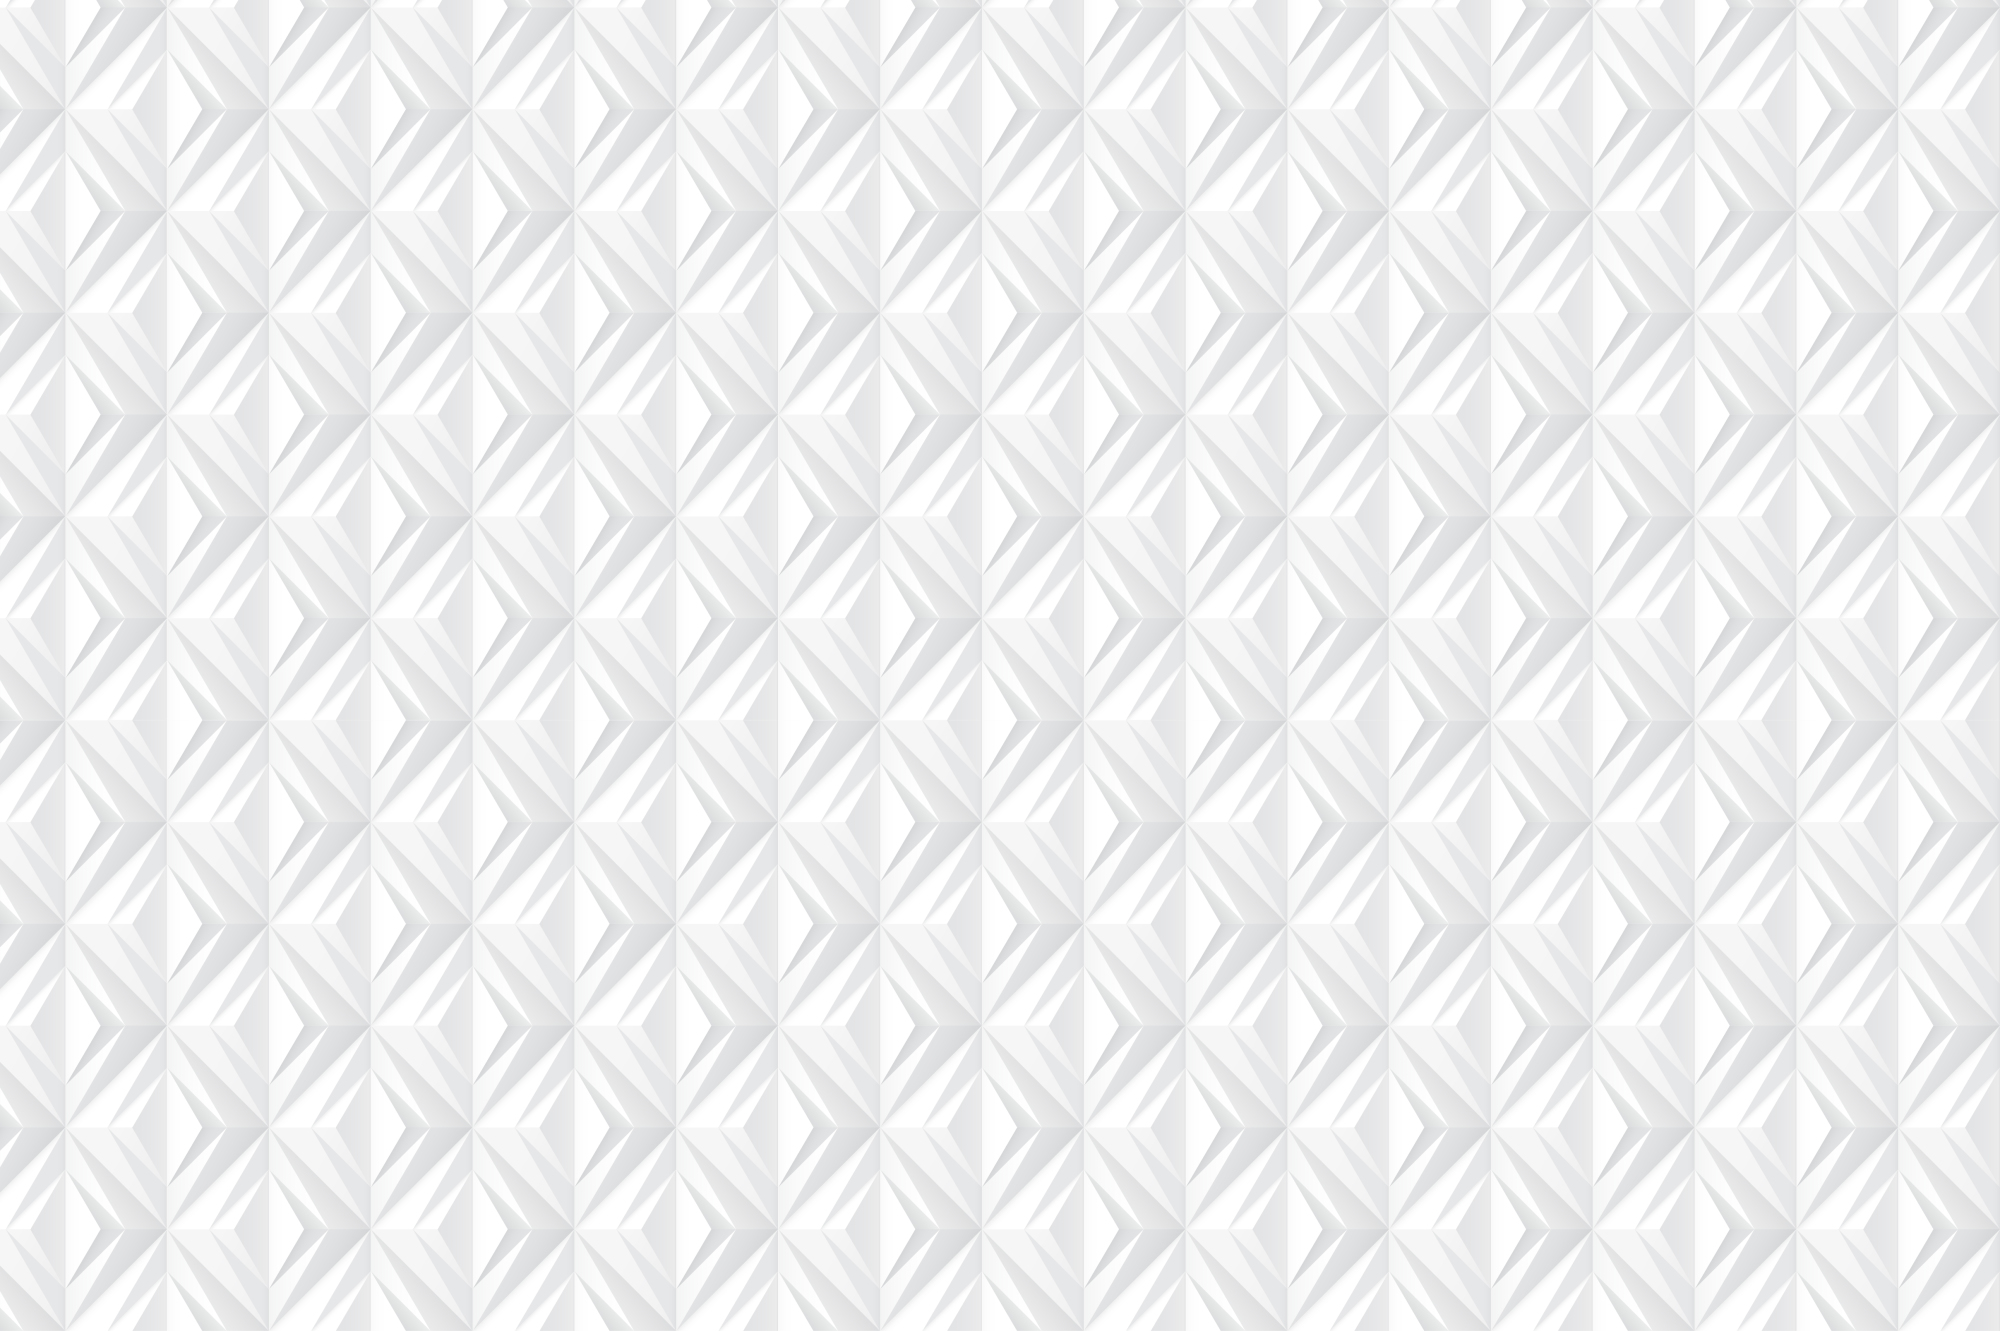 Seamless White 3d Textures. Swatches example image 3